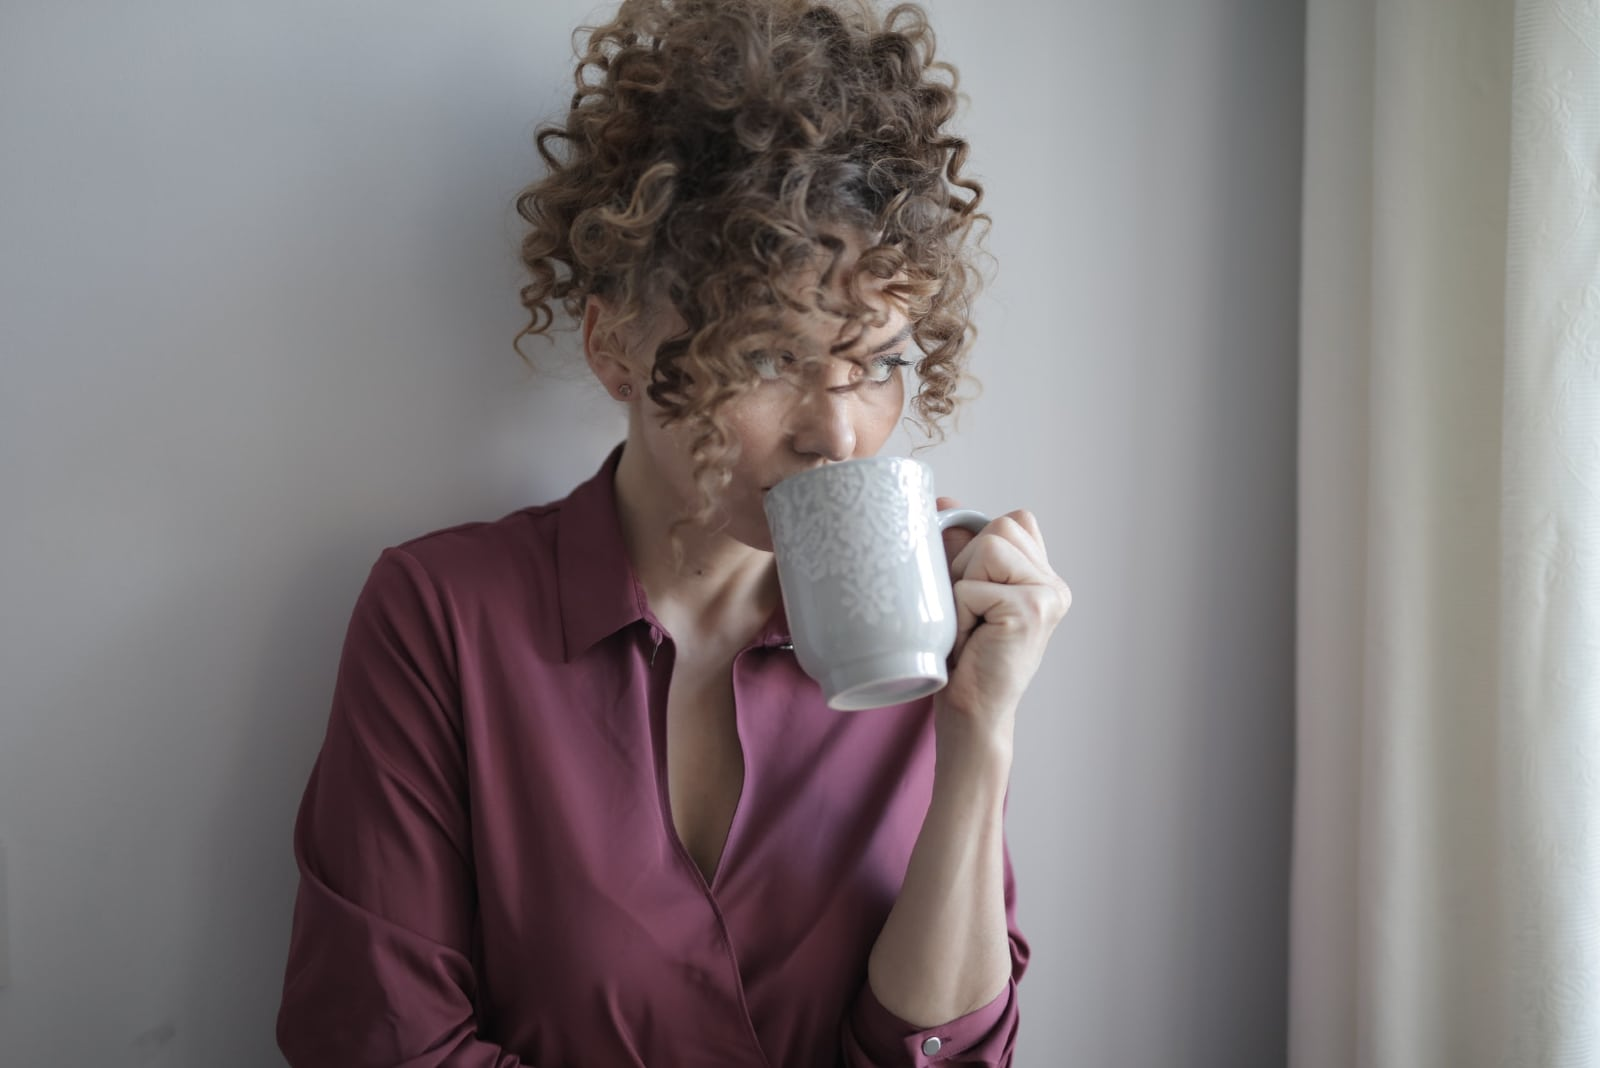 woman with curly hair drinking coffee near wall